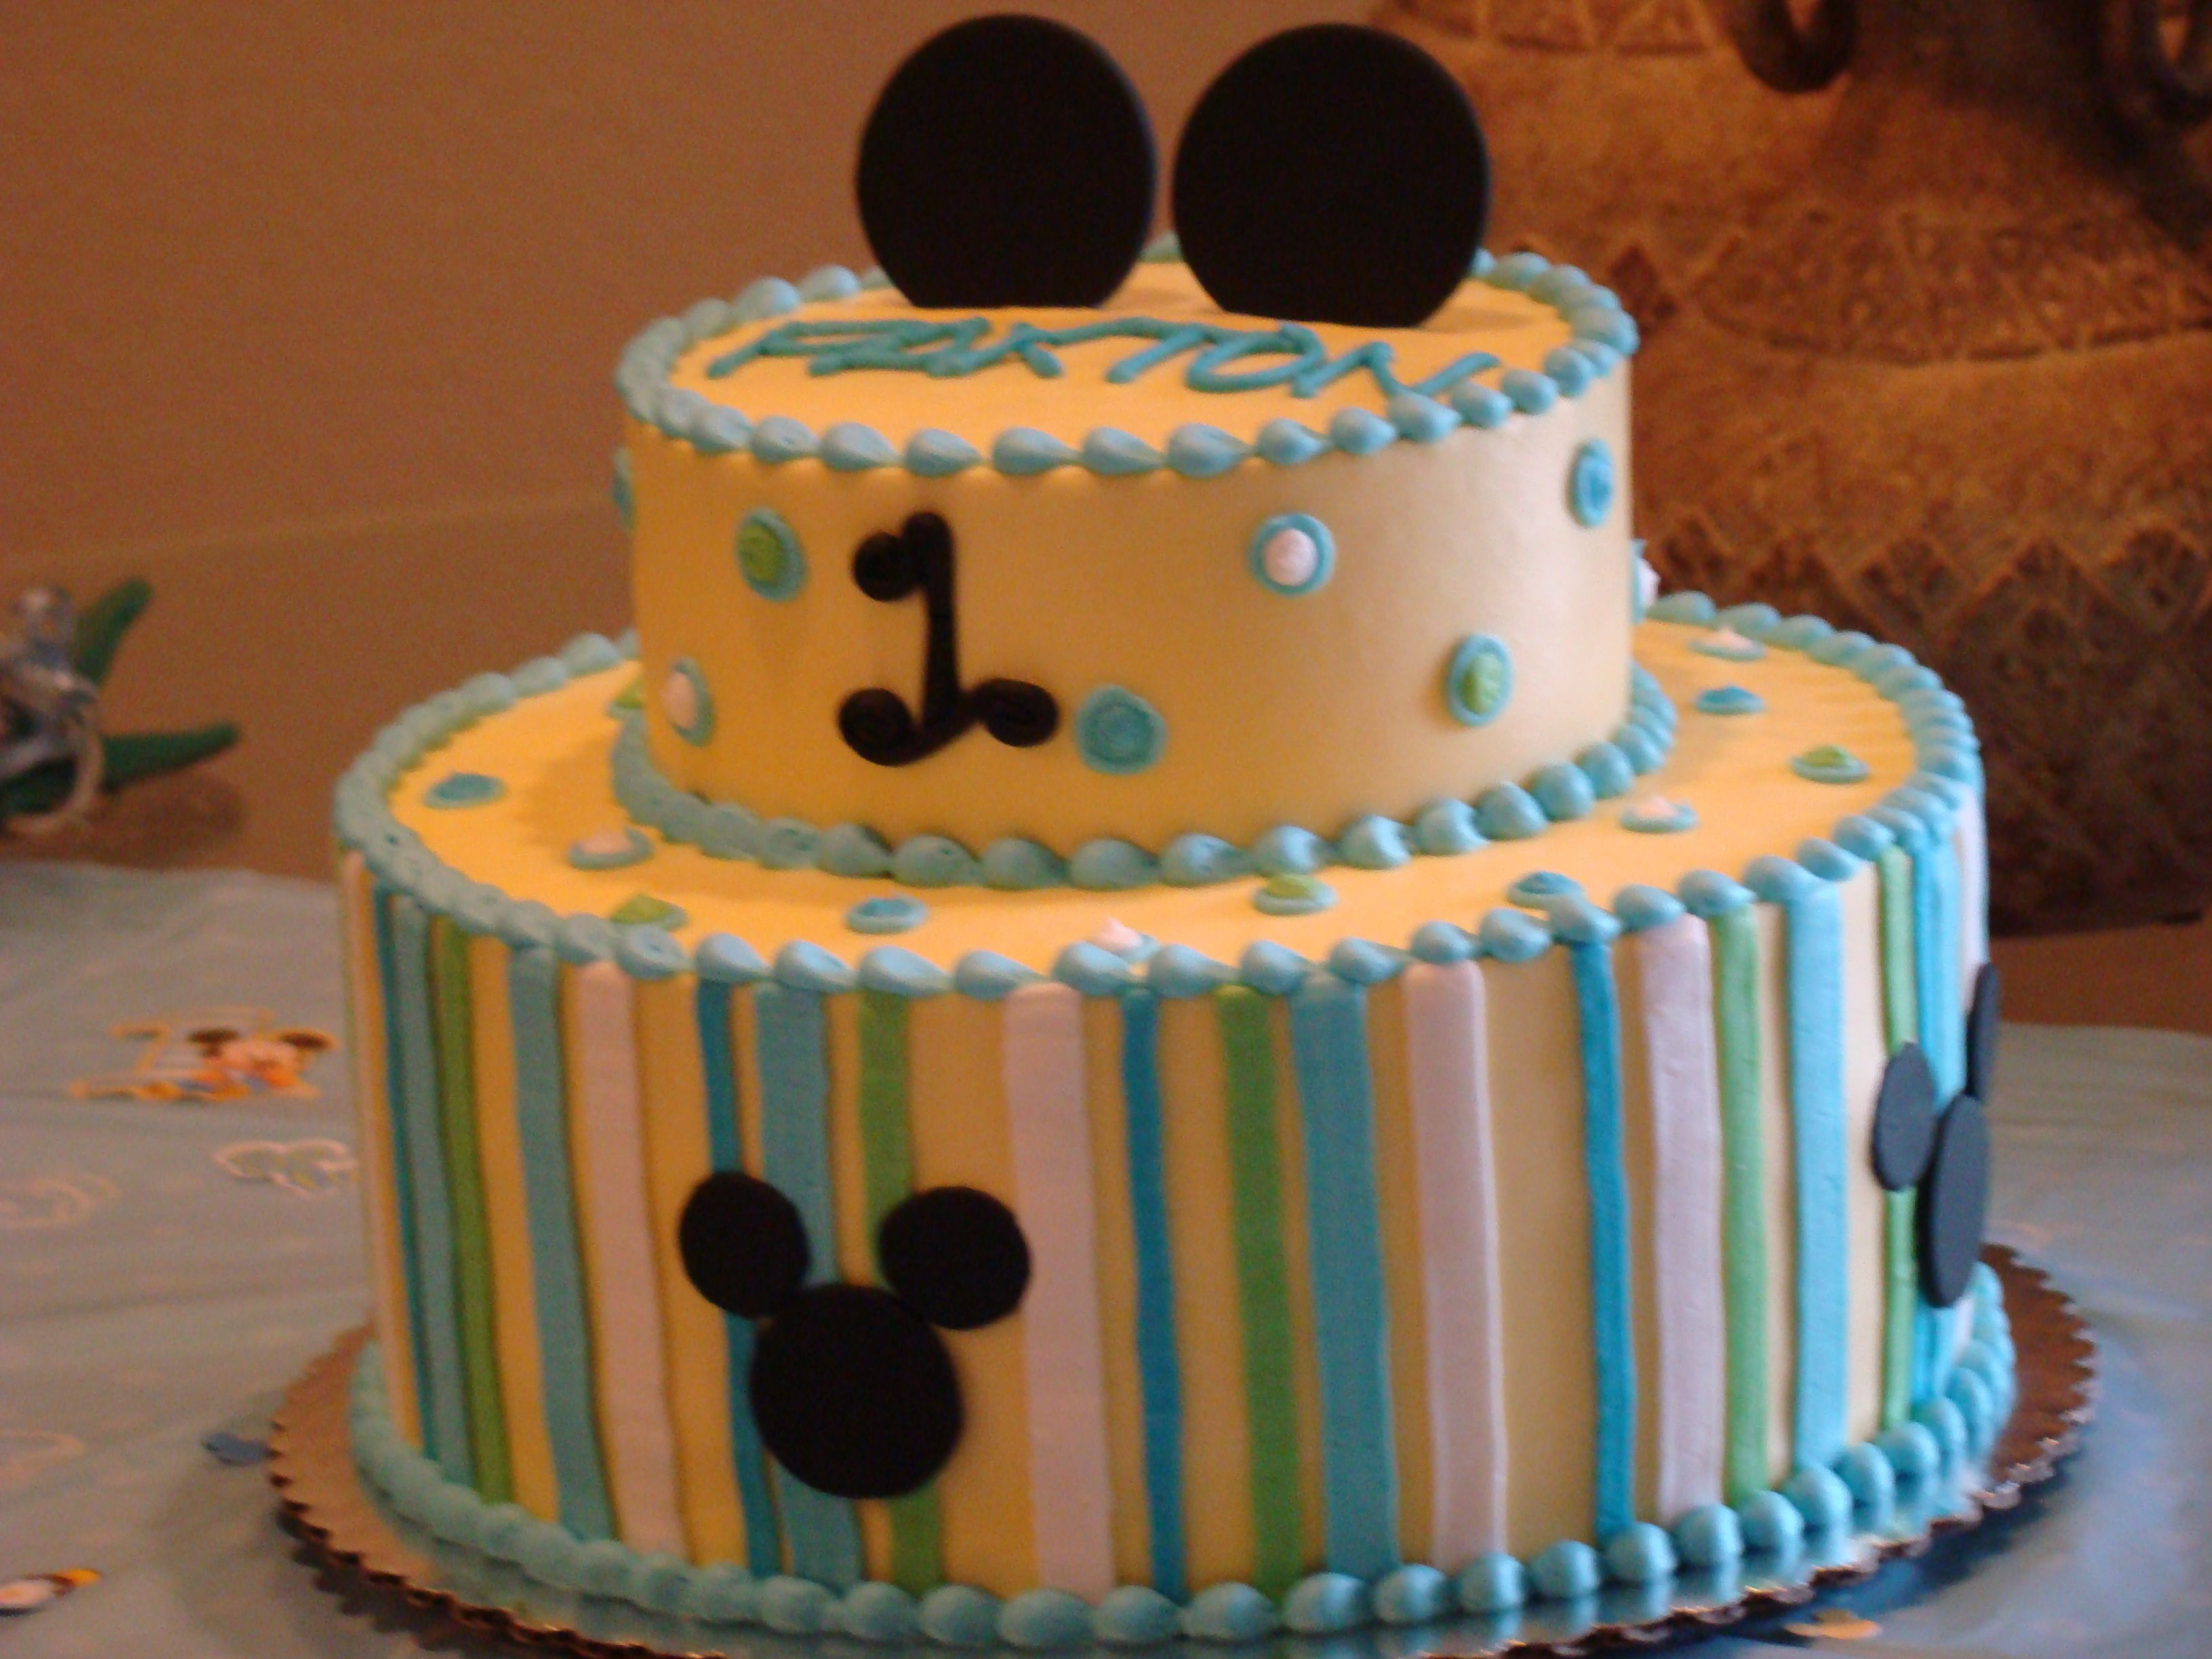 Magnificent Baby Mickey Mouse Birthday Cake For Paxtons 1St Birthday Personalised Birthday Cards Sponlily Jamesorg